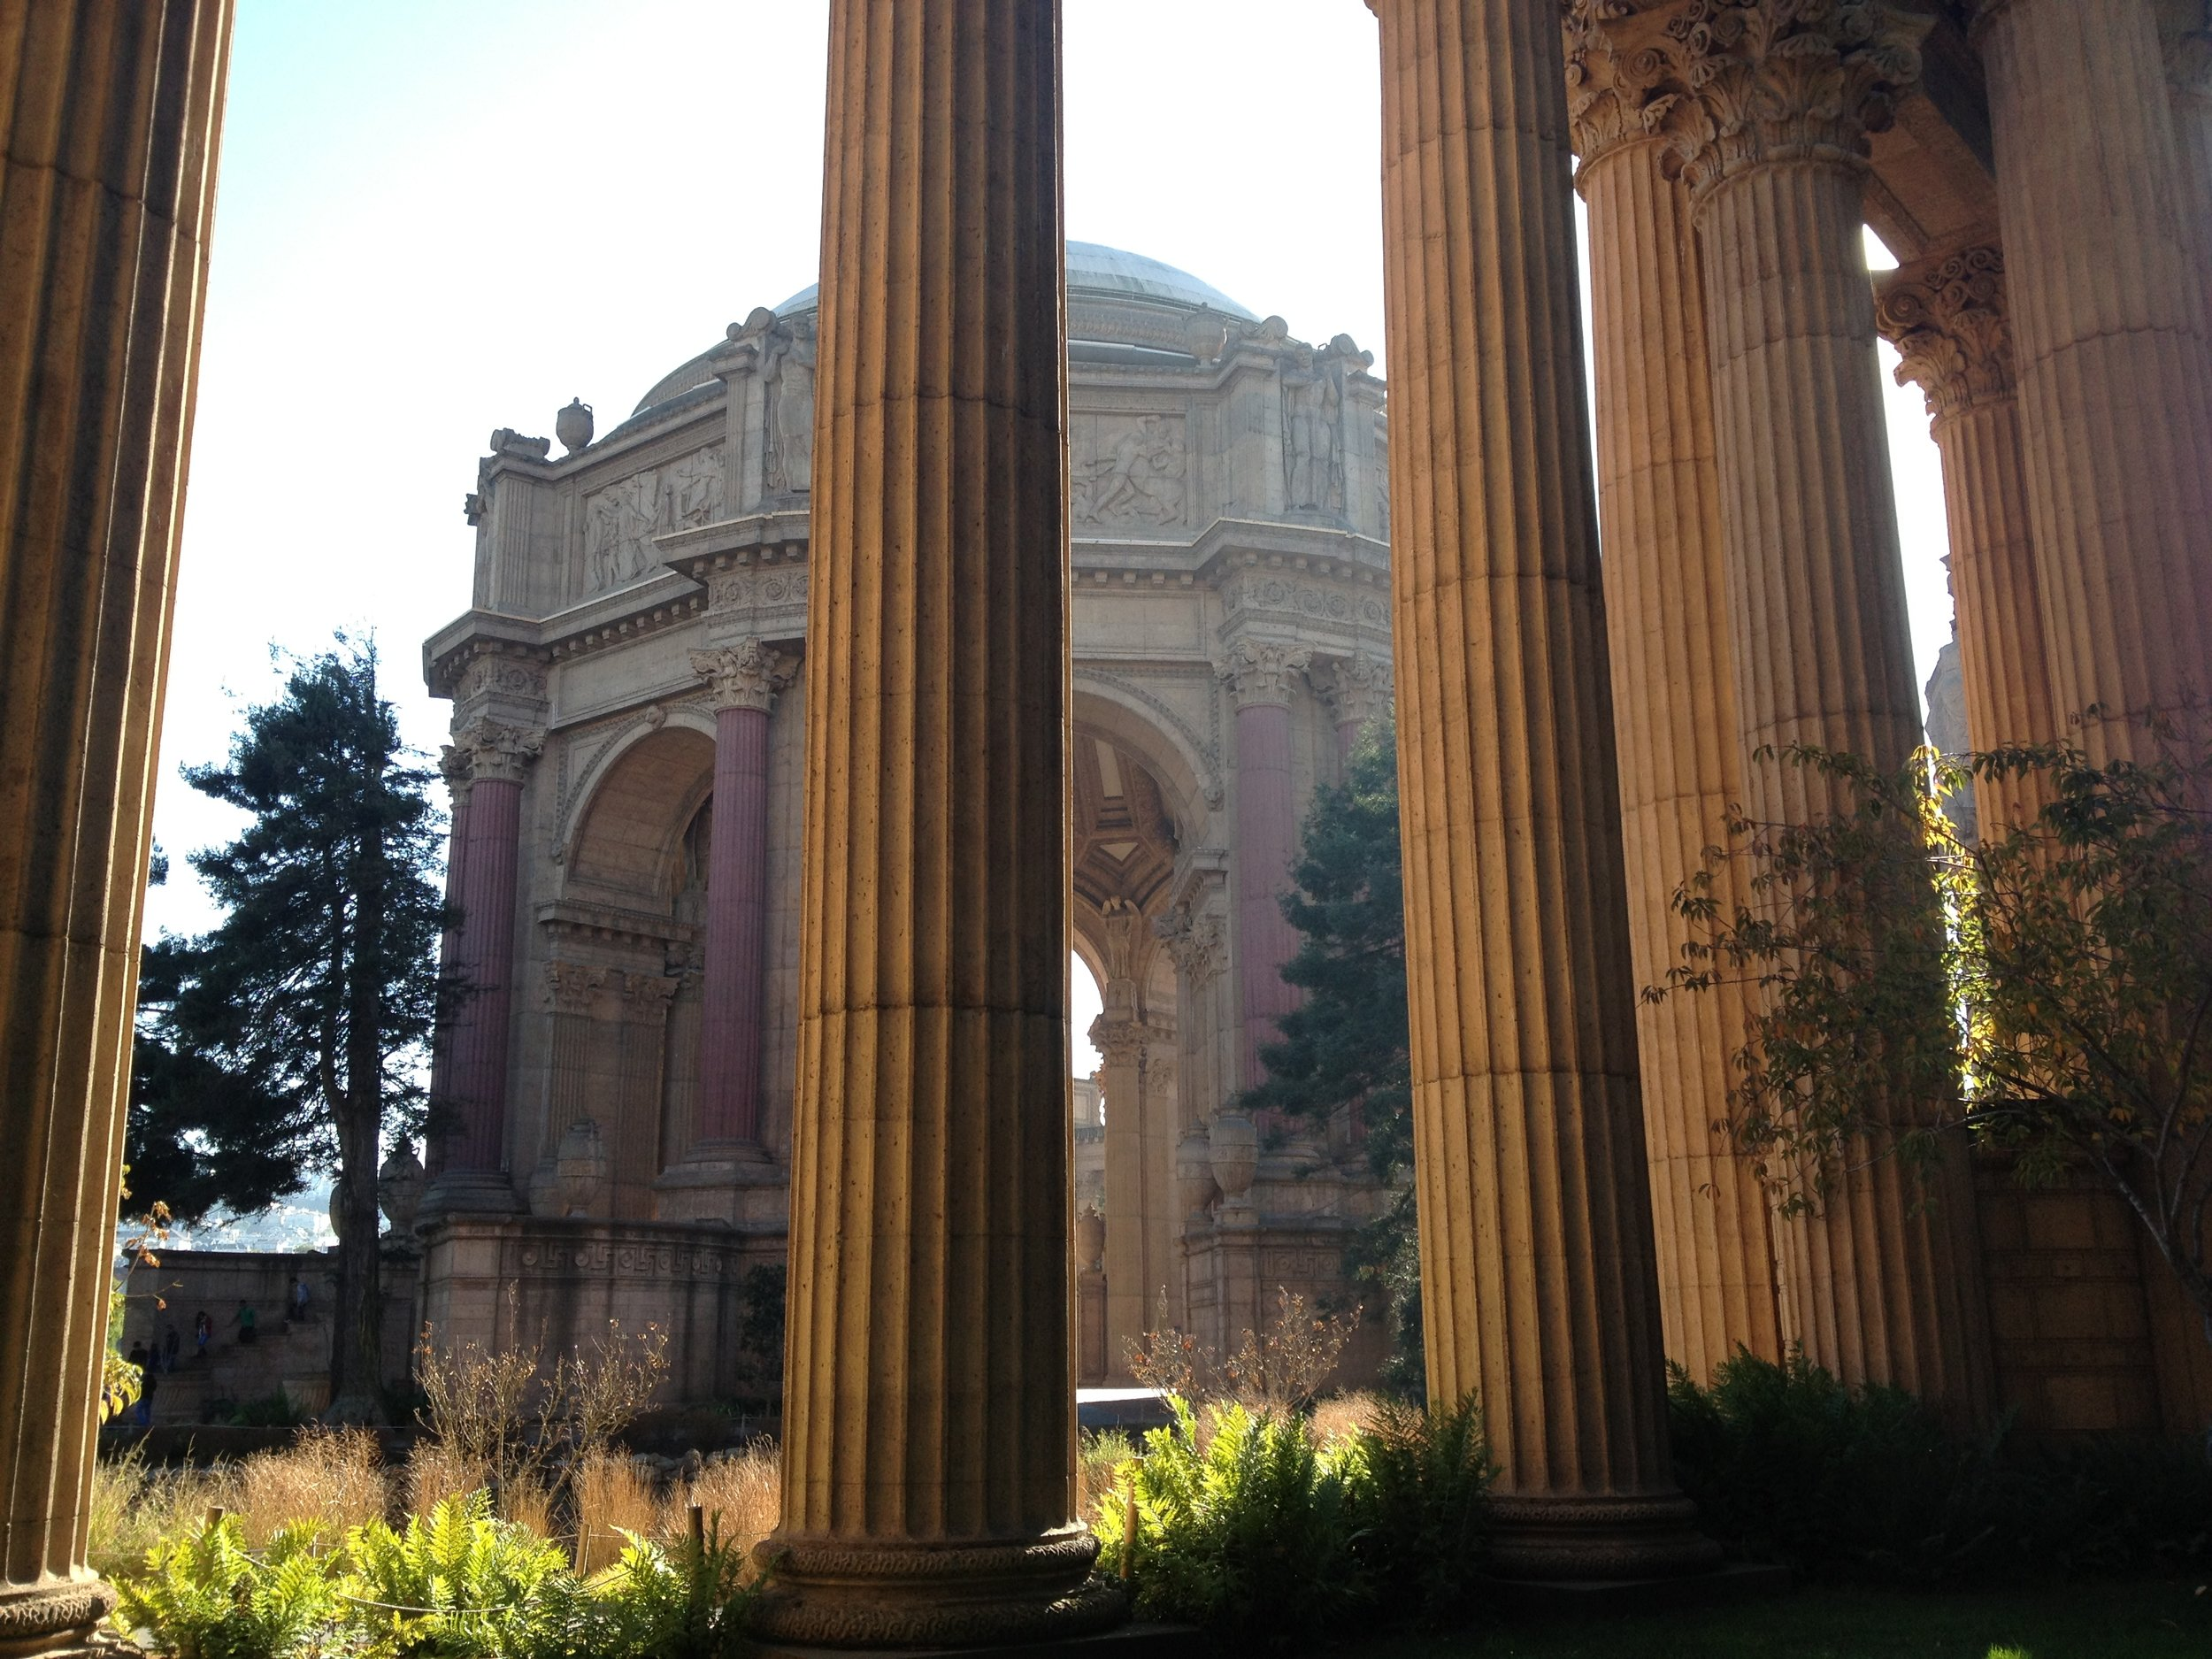 A little trip to the Palace of Fine Arts!